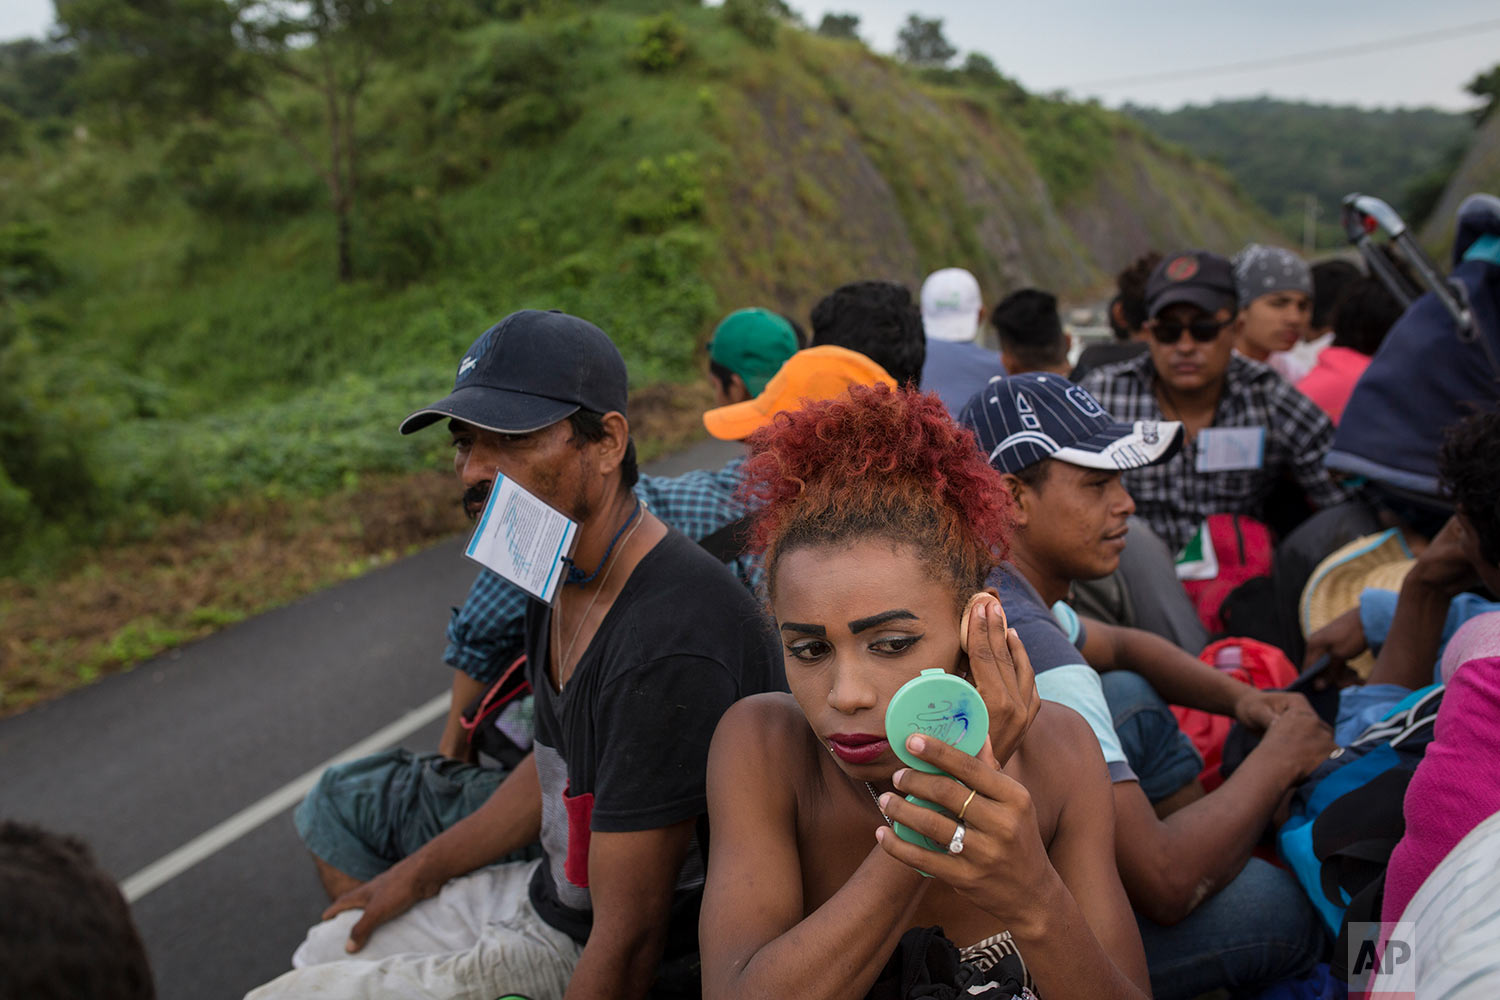 In this Nov. 2, 2018 photo, Honduran transgender Alexa Amaya, who is part of a group of 50 or so LGBTQ migrants traveling with the migrant caravan hoping to reach the U.S. border, uses a compact miror to apply makeup while riding in the back of a flatbed truck to Sayula, Mexico. AP Photo/Rodrigo Abd)